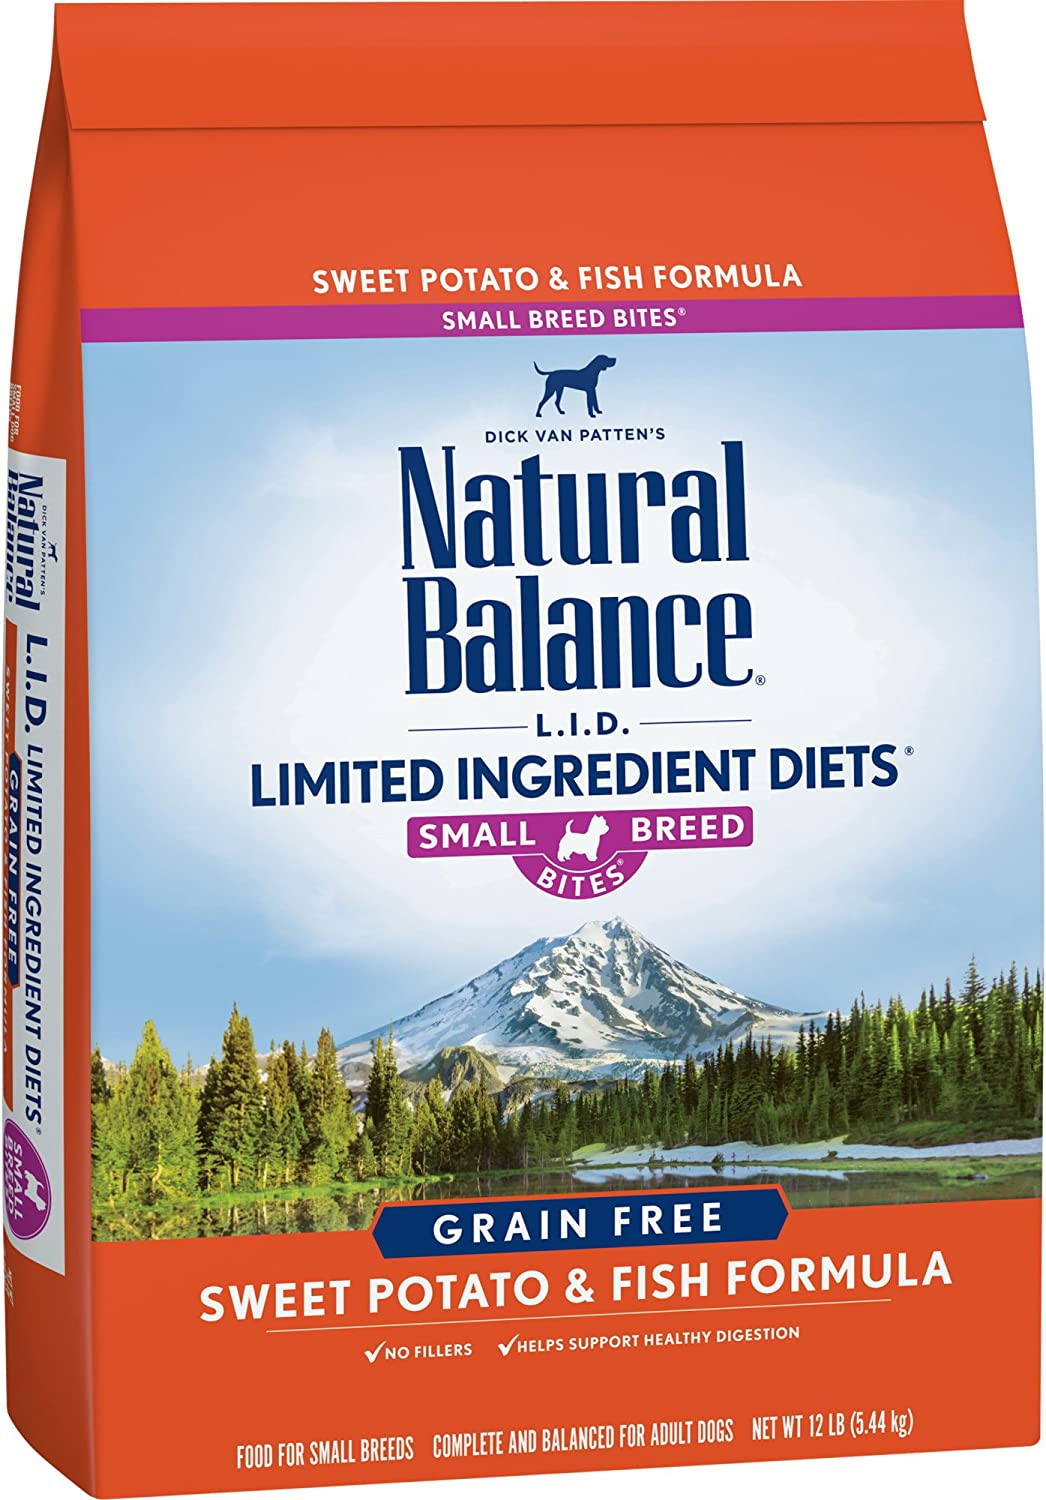 Natural Balance Small Breed Bites L.I.D. Limited Ingredient Diets Dry Dog Food, Grain Free, Sweet Potato & Fish Formula, 12Pound